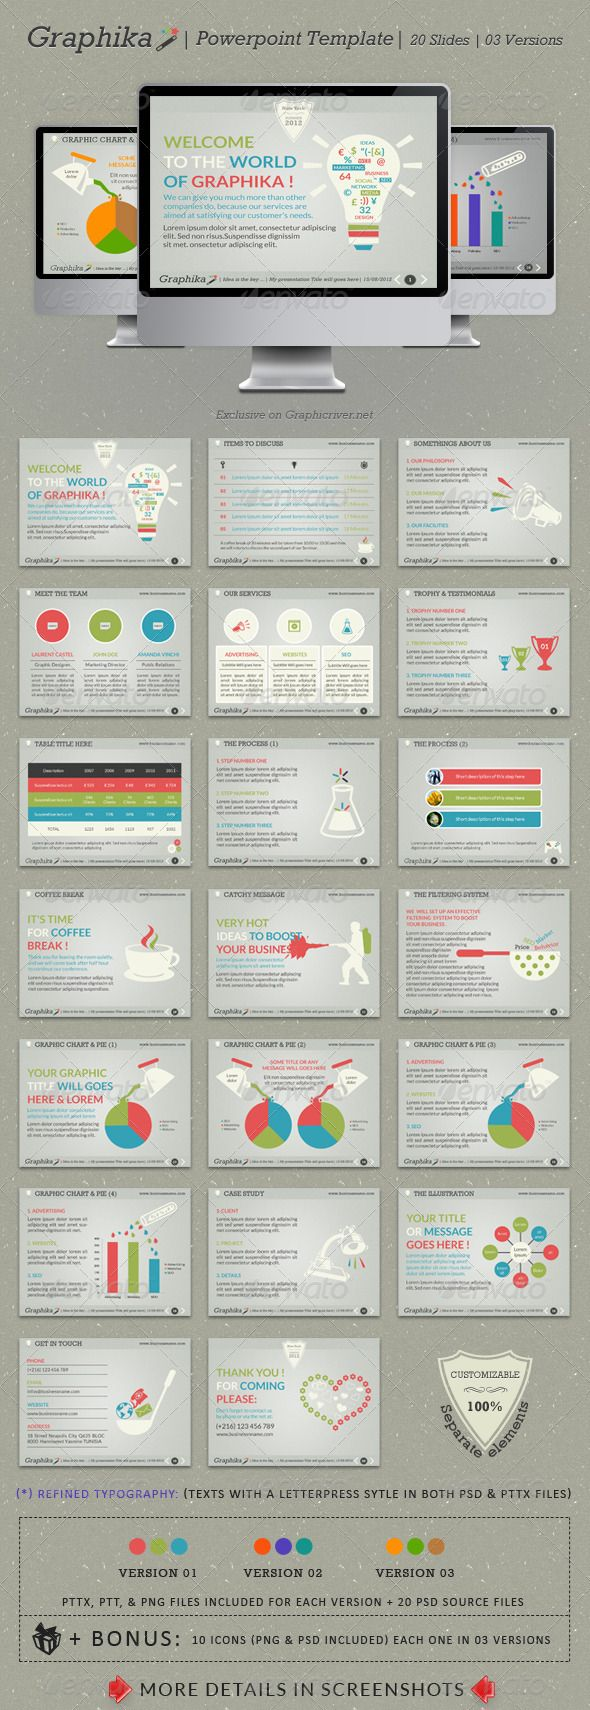 Graphika PowerPoint Templates